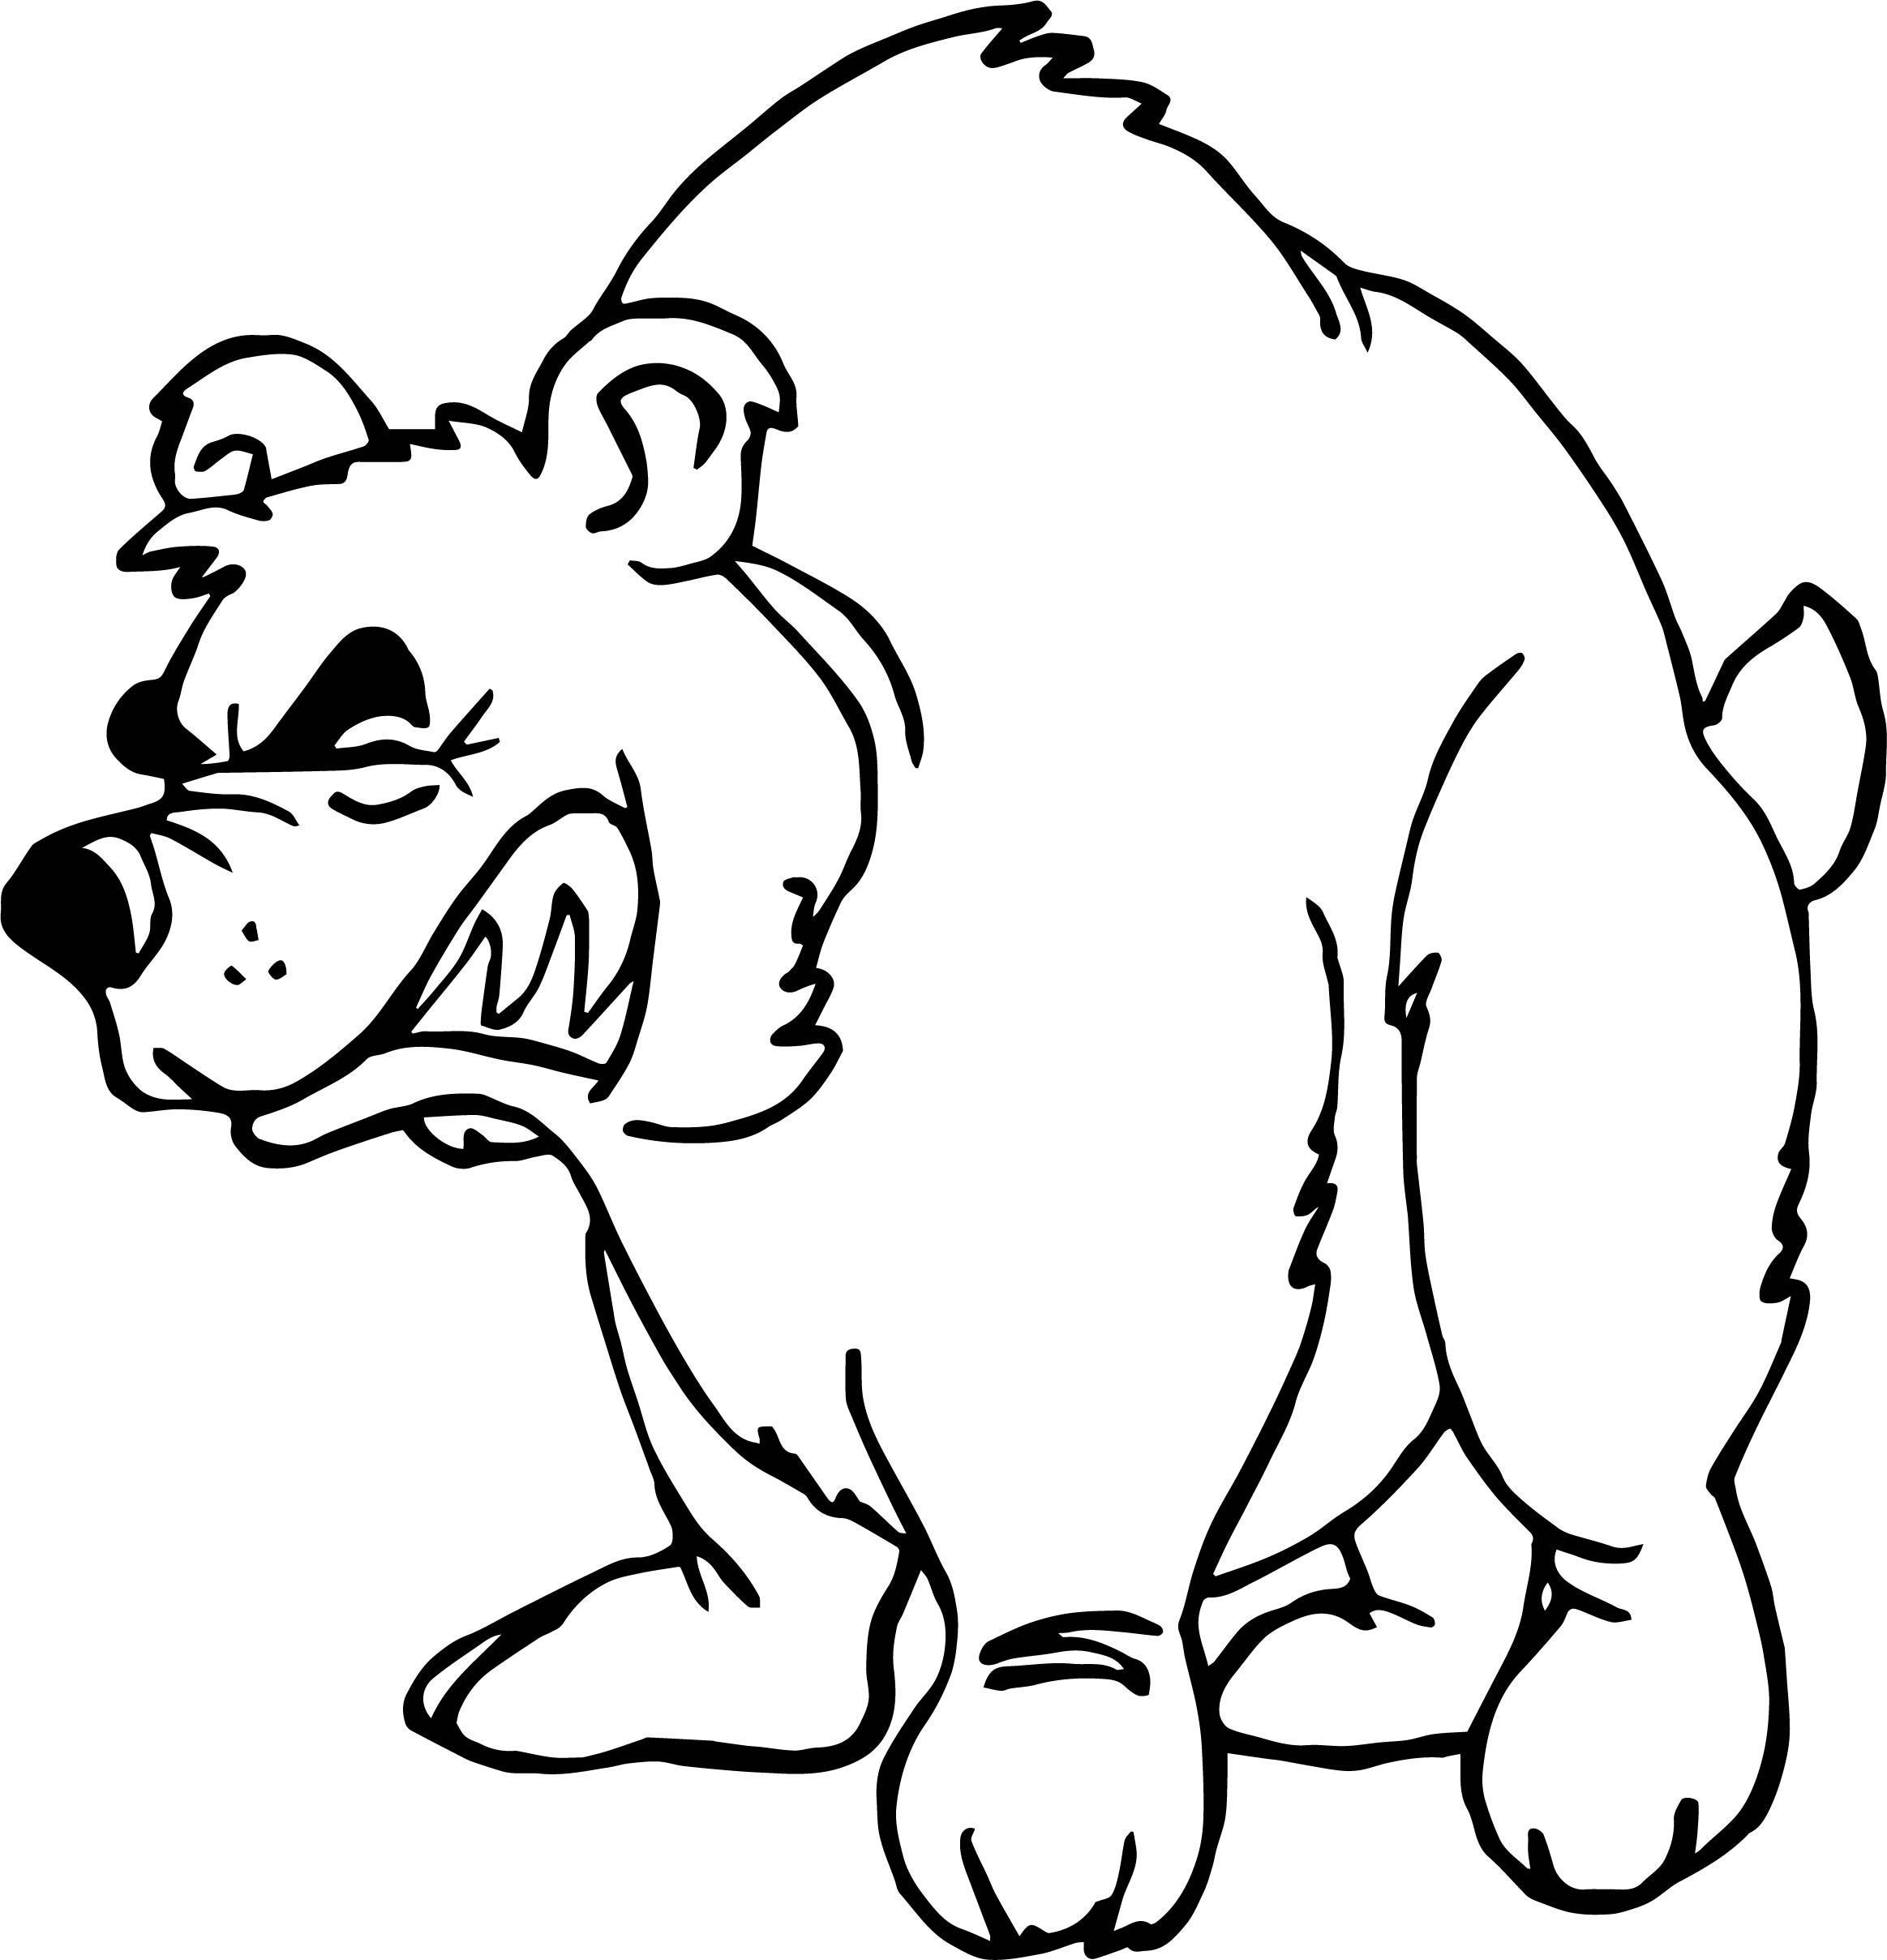 Awesome Angry Home Bear Coloring Page Bear Coloring Pages Panda